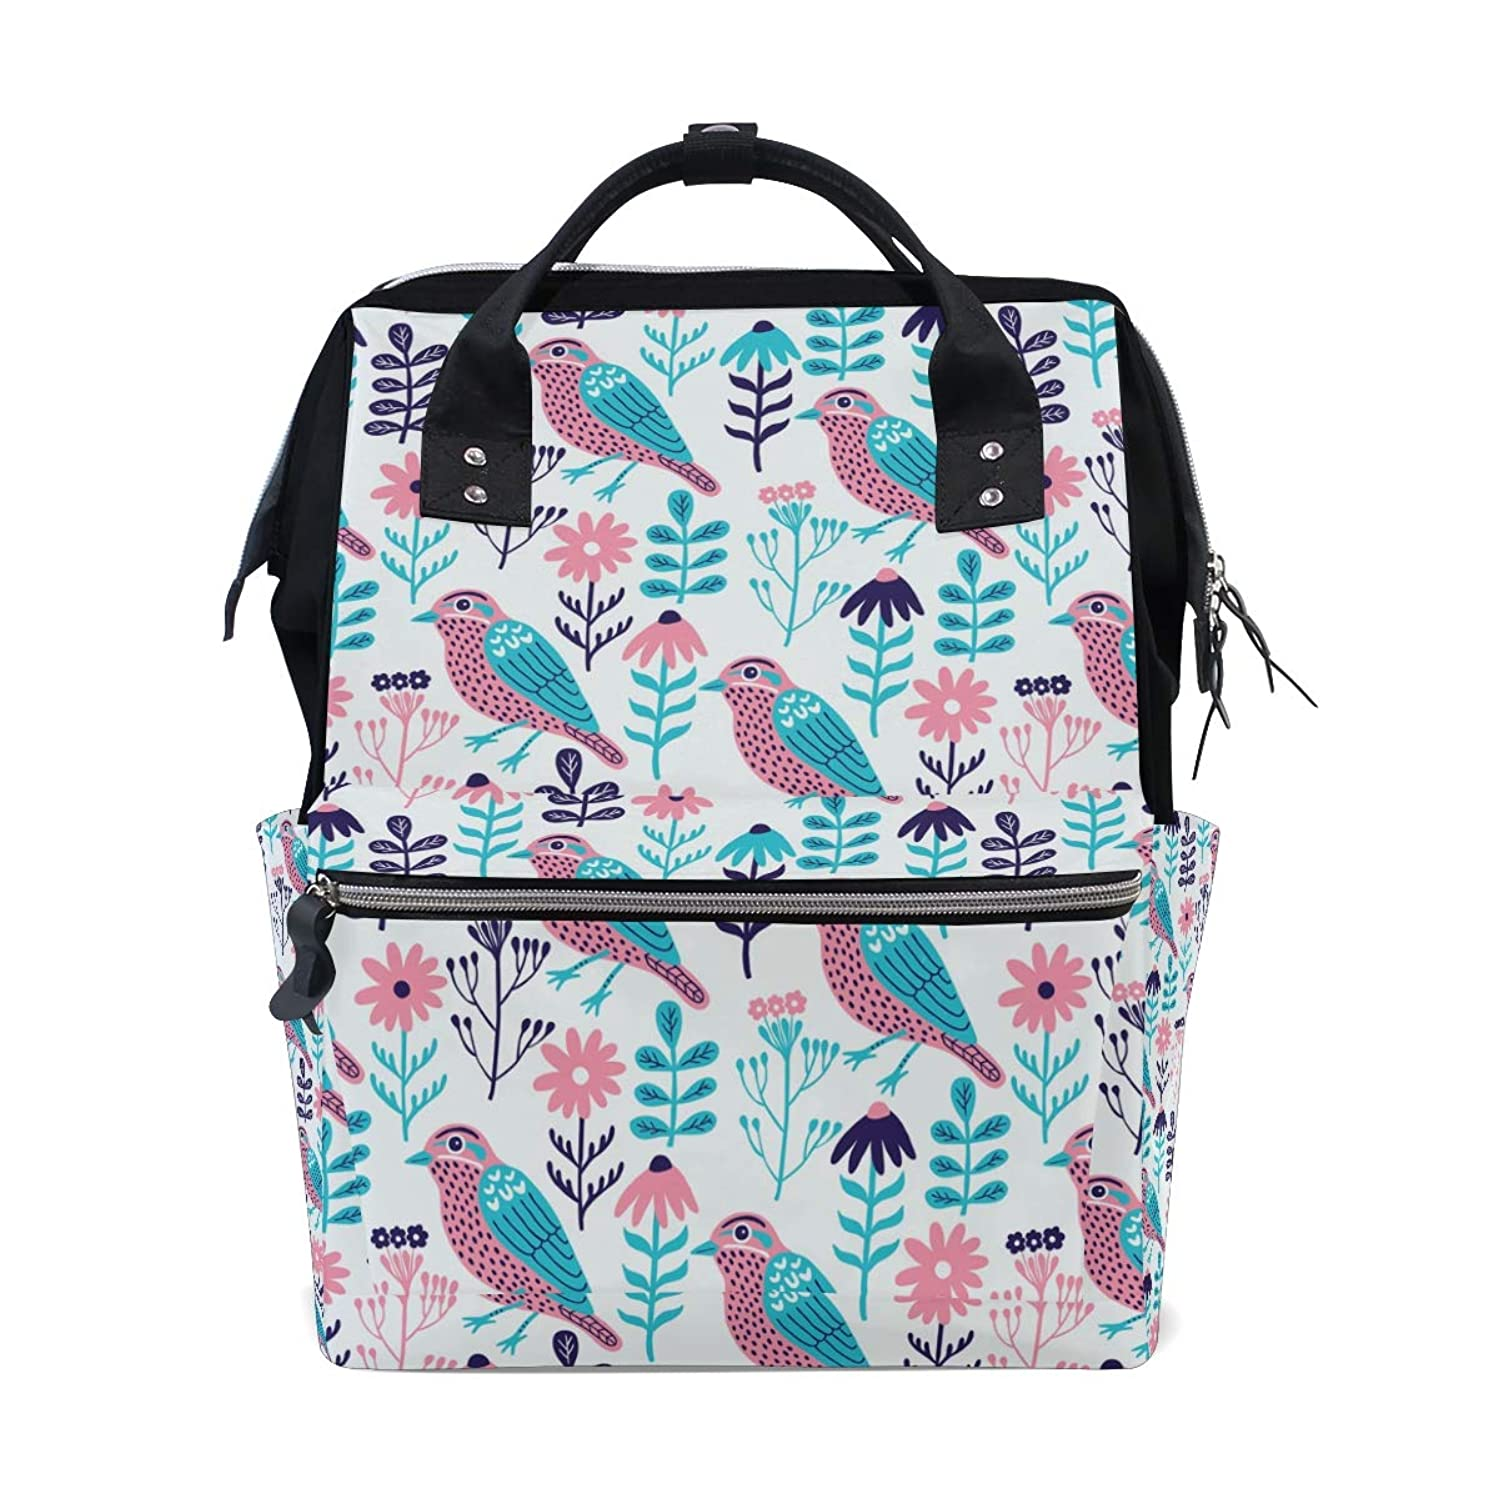 Birds Flowers Leaves School Backpack Large Capacity Mummy Bags Laptop Handbag Casual Travel Rucksack Satchel For Women Men Adult Teen Children